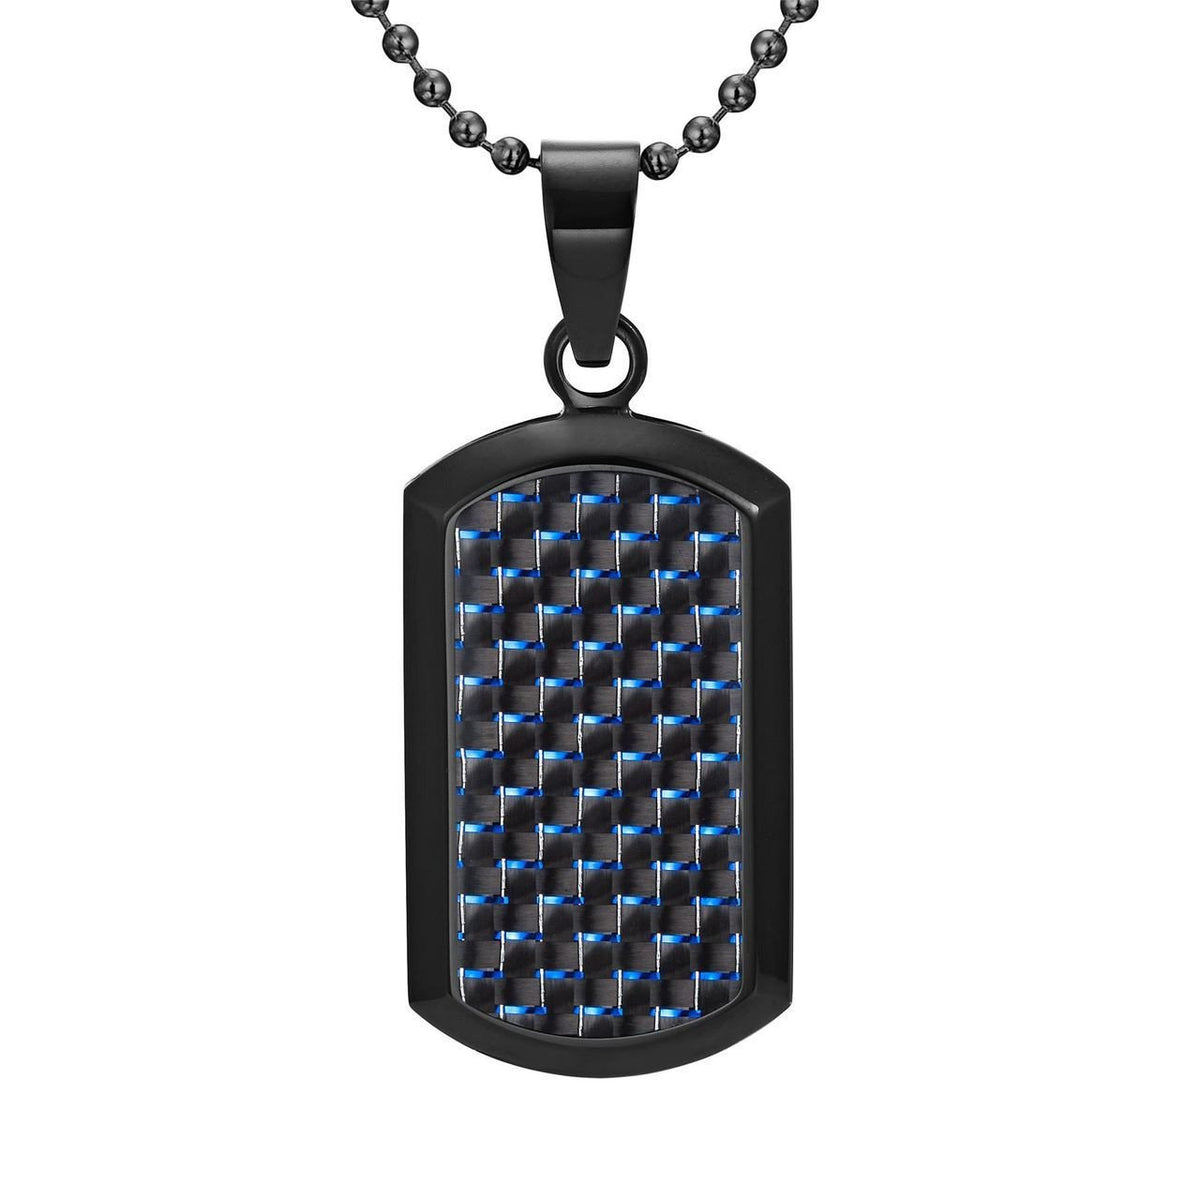 Willis Judd Men's Black Stainless Steel Dog Tag Pendant Engraved US Marine Latin Semper Fidelis with Blue Carbon Fiber and Necklace with Gift Pouch